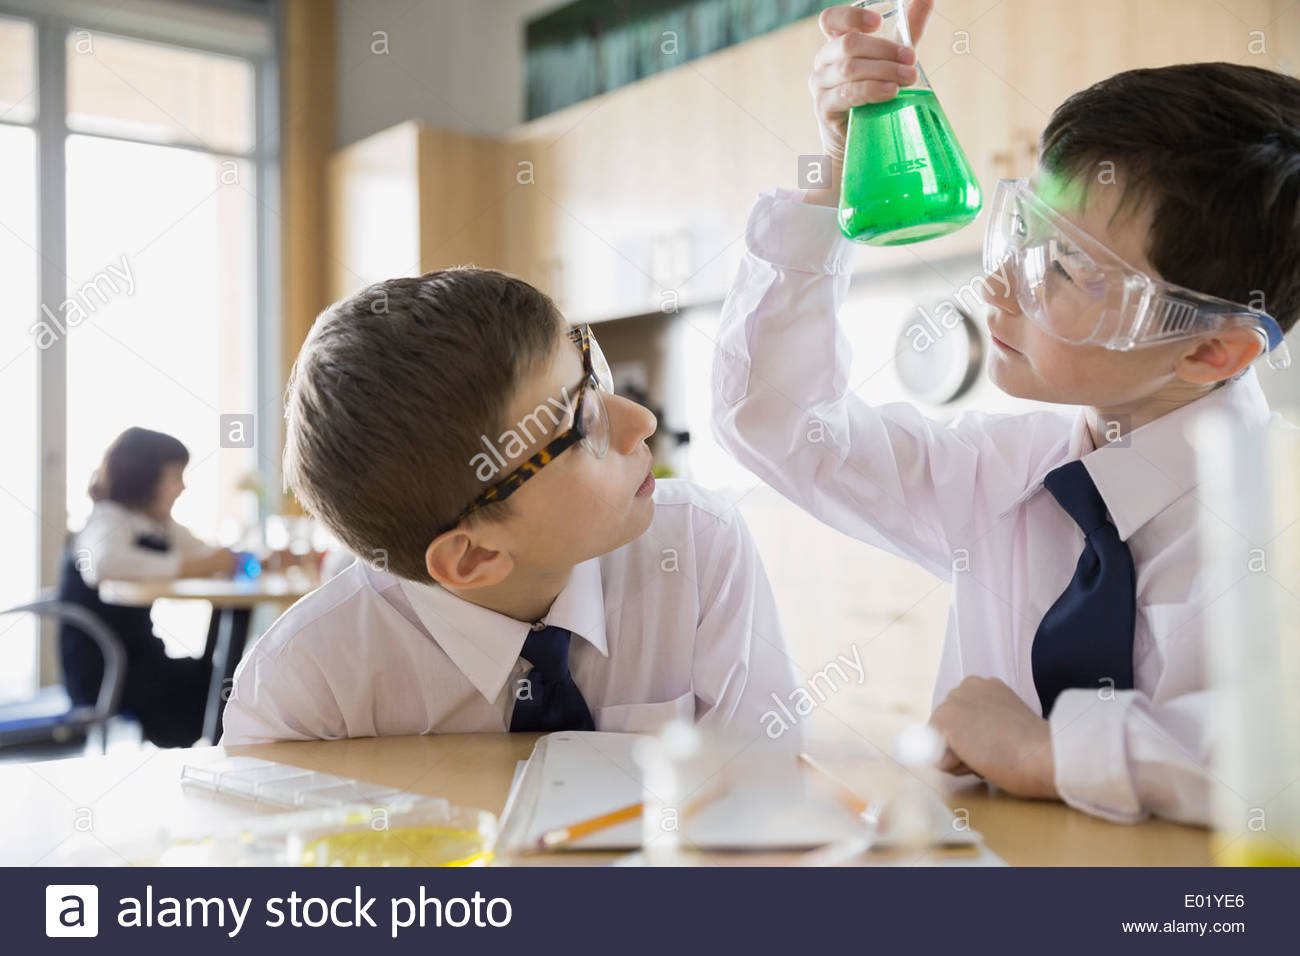 School boys conducting experiment in science classroom - Stock Image